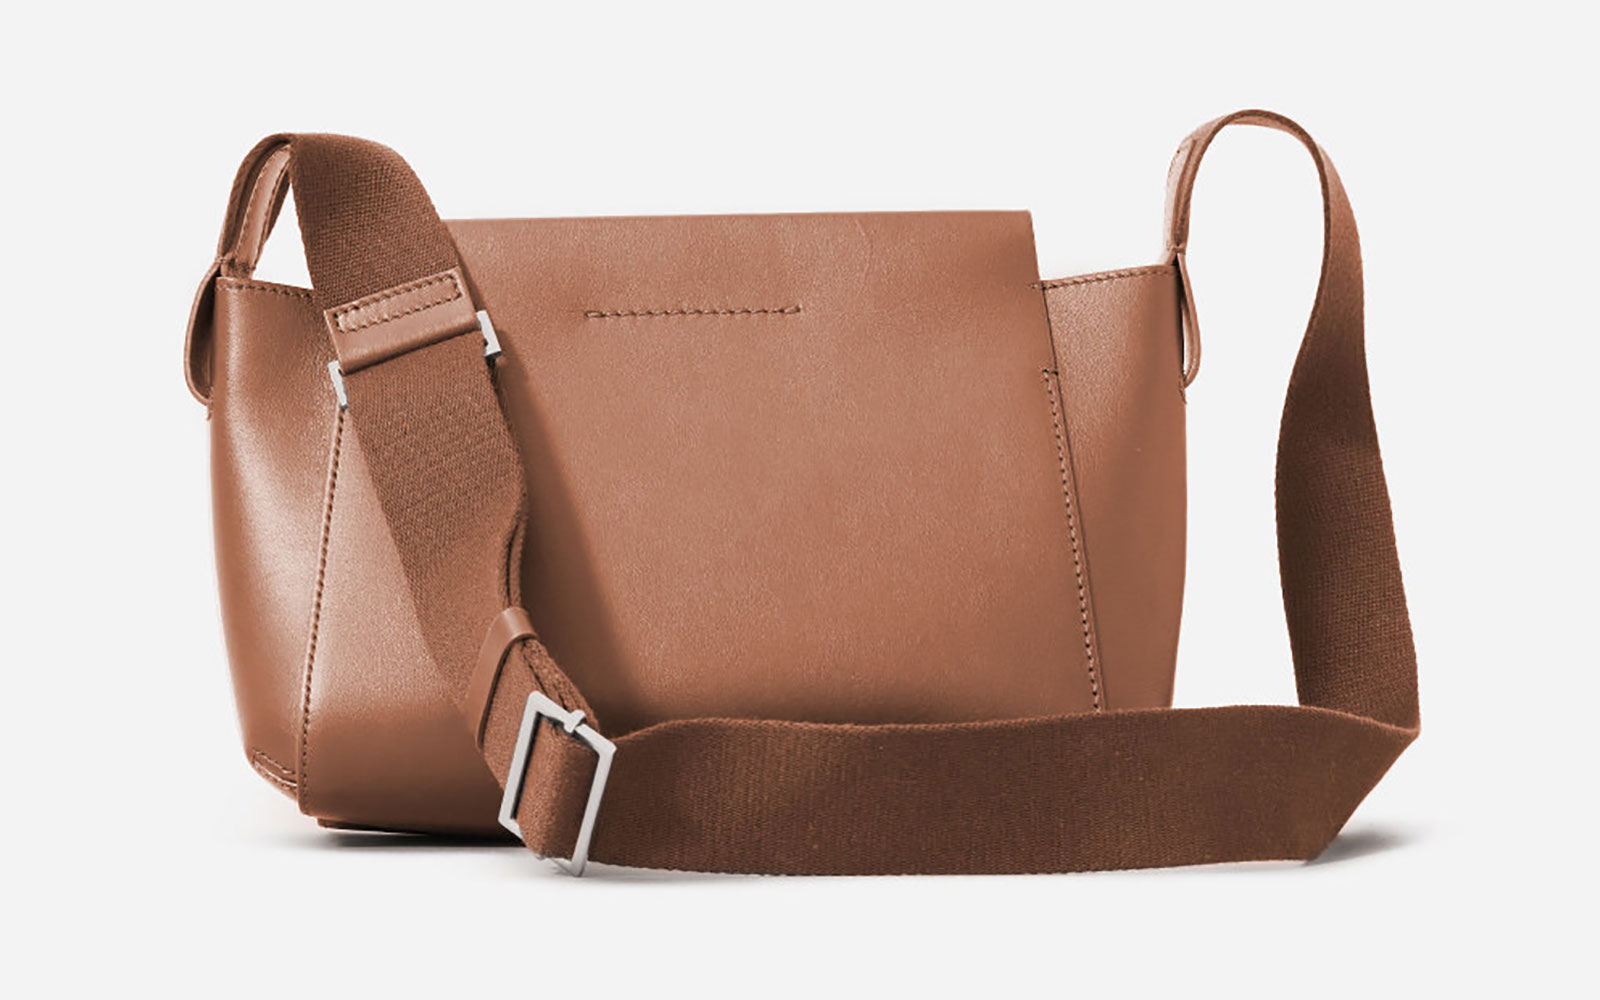 Everlane The Form Mini Bag